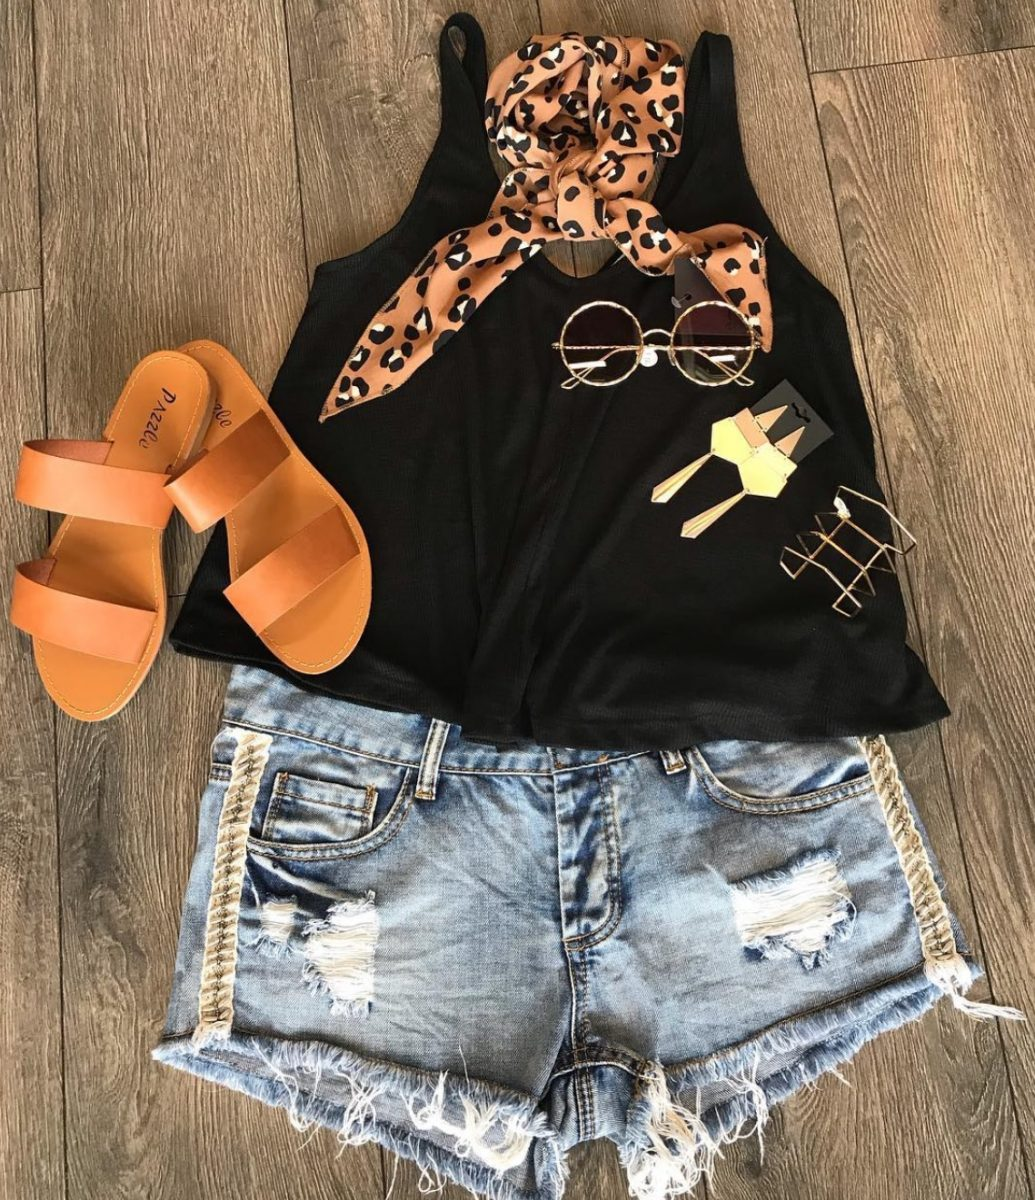 Relax your style and enjoy some inspiration for some casual summer outfits that you can use all summer long and on vacation! Summer Fashion | Summer 2019 Fashion Trends | Summer 2019 Style Trends | What to Wear During Summer | How to Dress Casually | Casual Styles for Summer